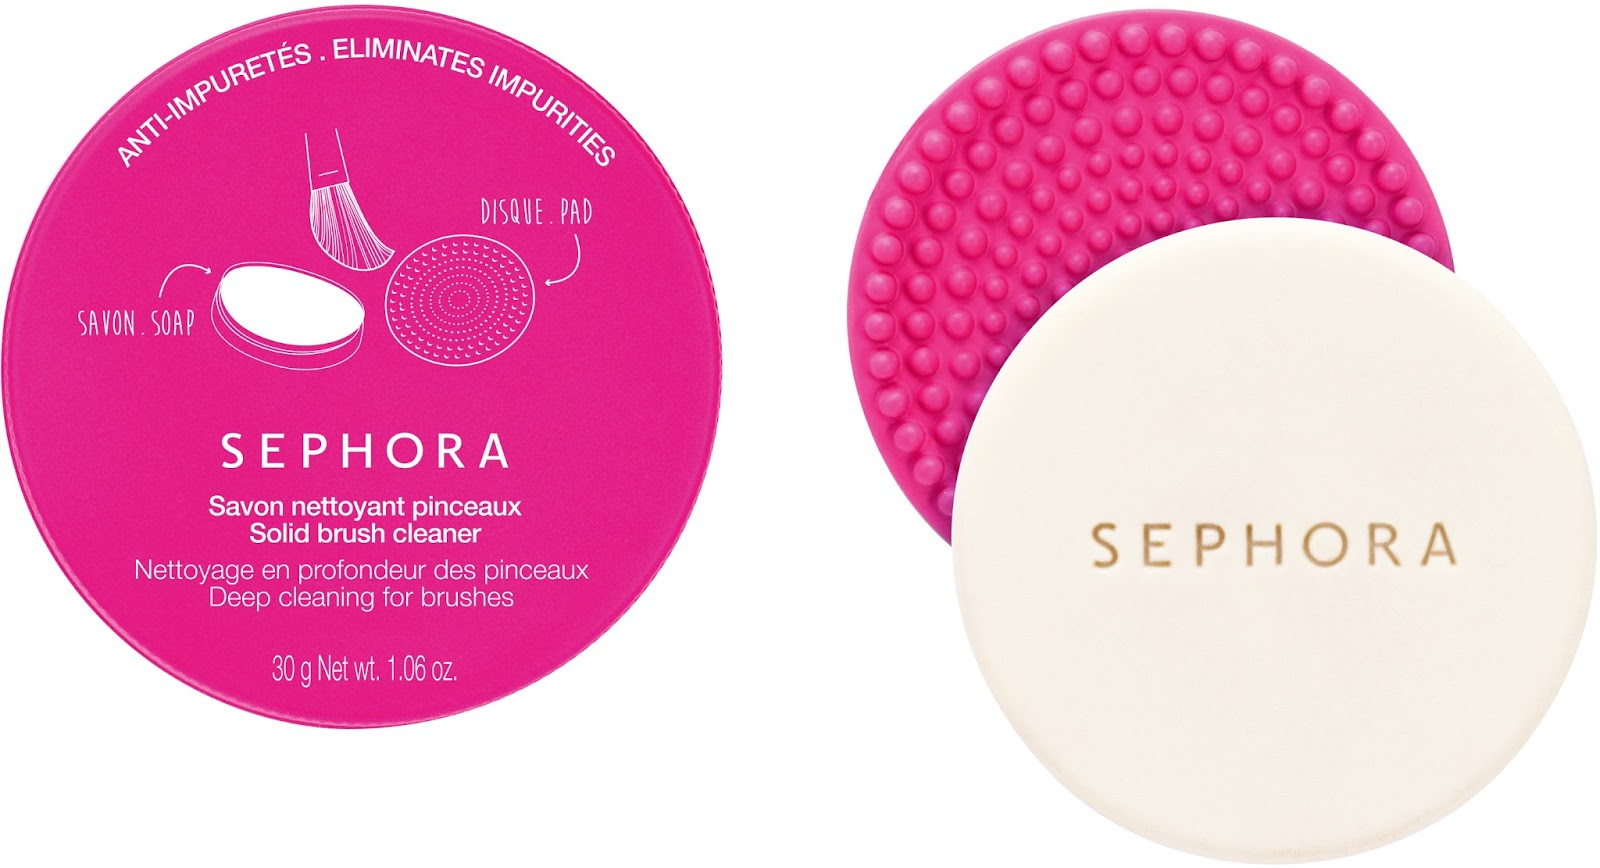 Sephora_Solid_Brush_Cleaner